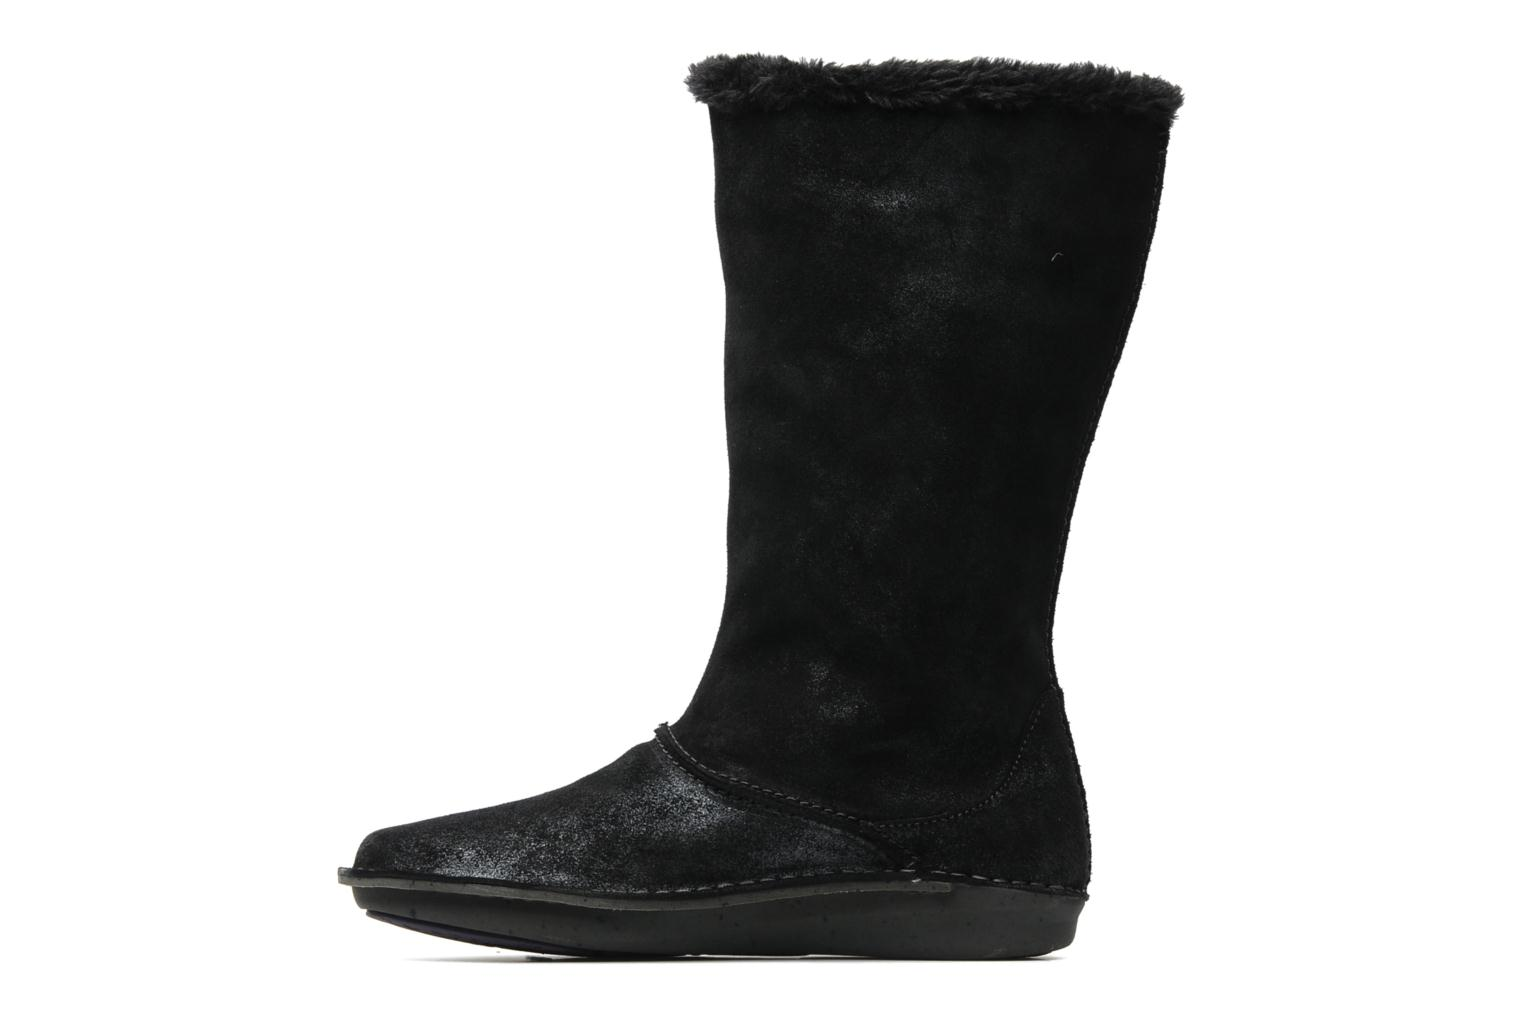 Bottines et boots Hush Puppies SACHEM Noir vue face